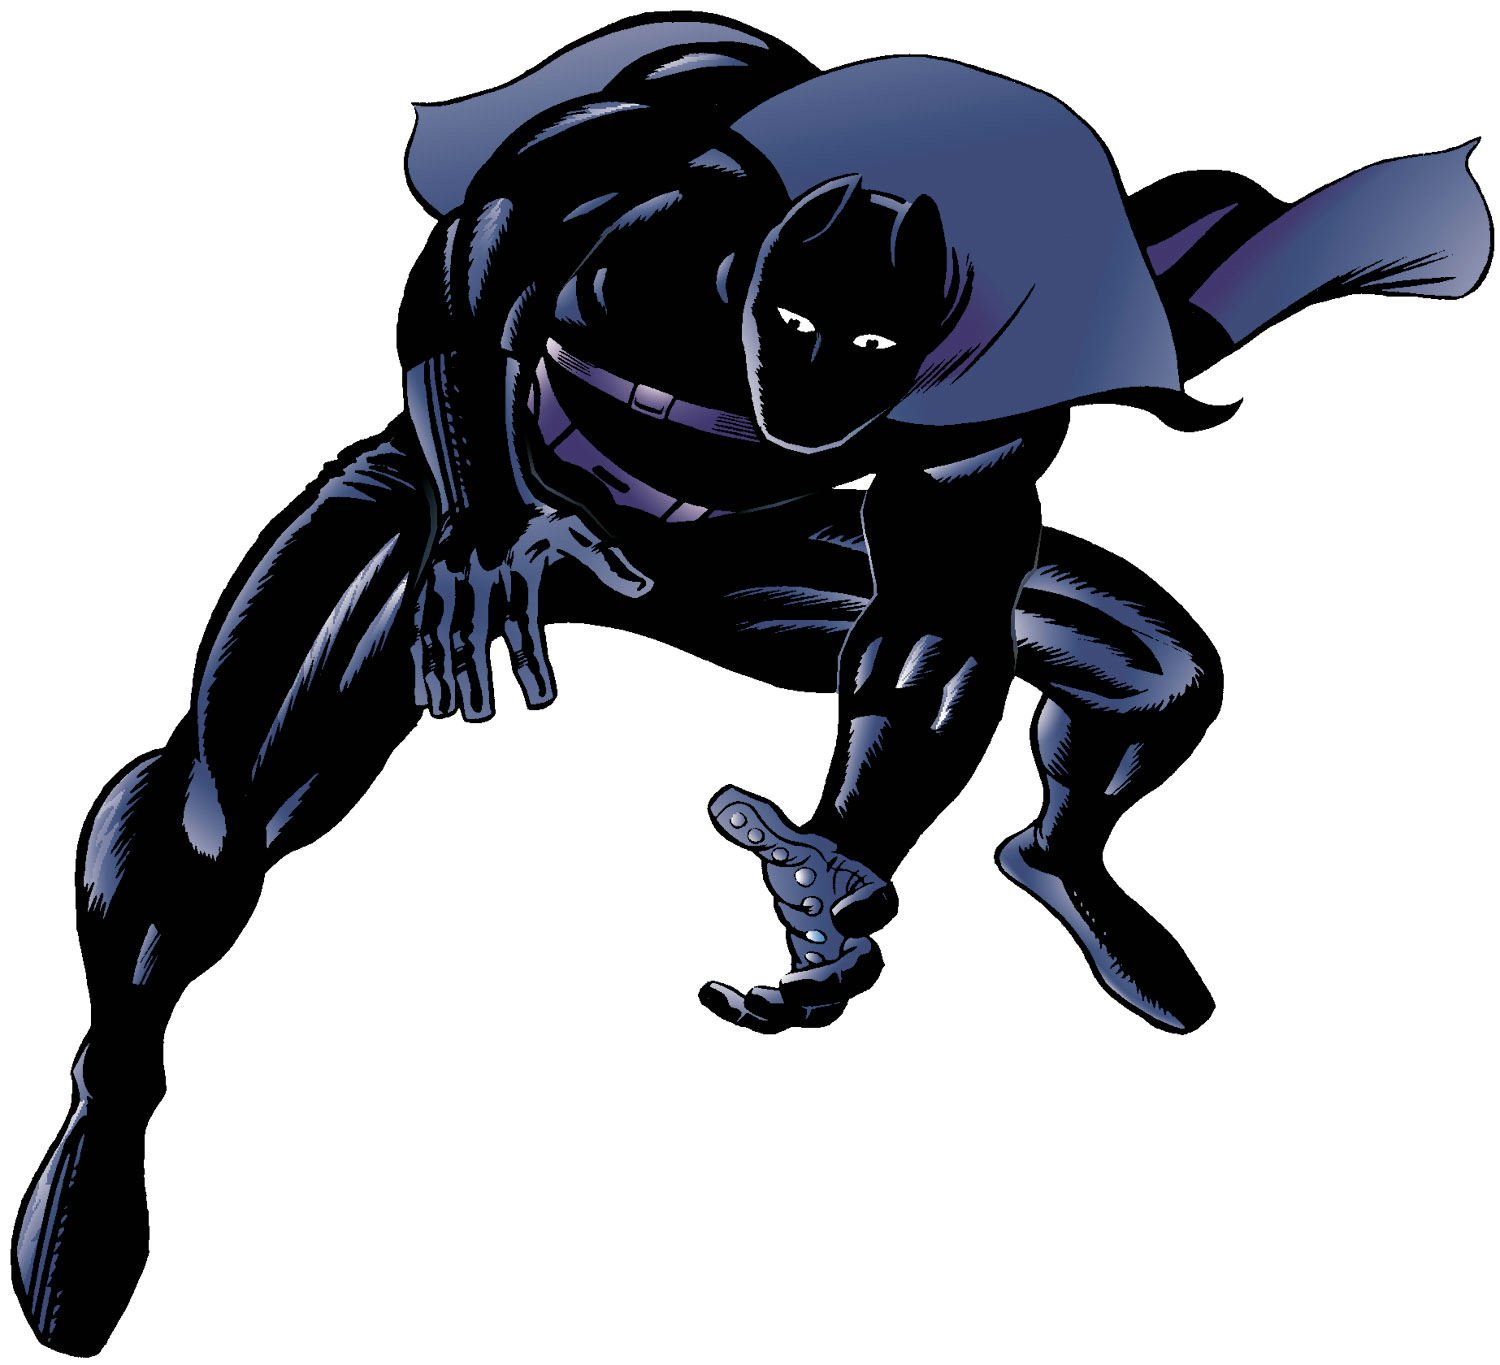 amazon com black panther vol 1 9780785116875 jack kirby books rh amazon com Panther Clip Art Graphics Vector Clip Art Black Panther in Avengers